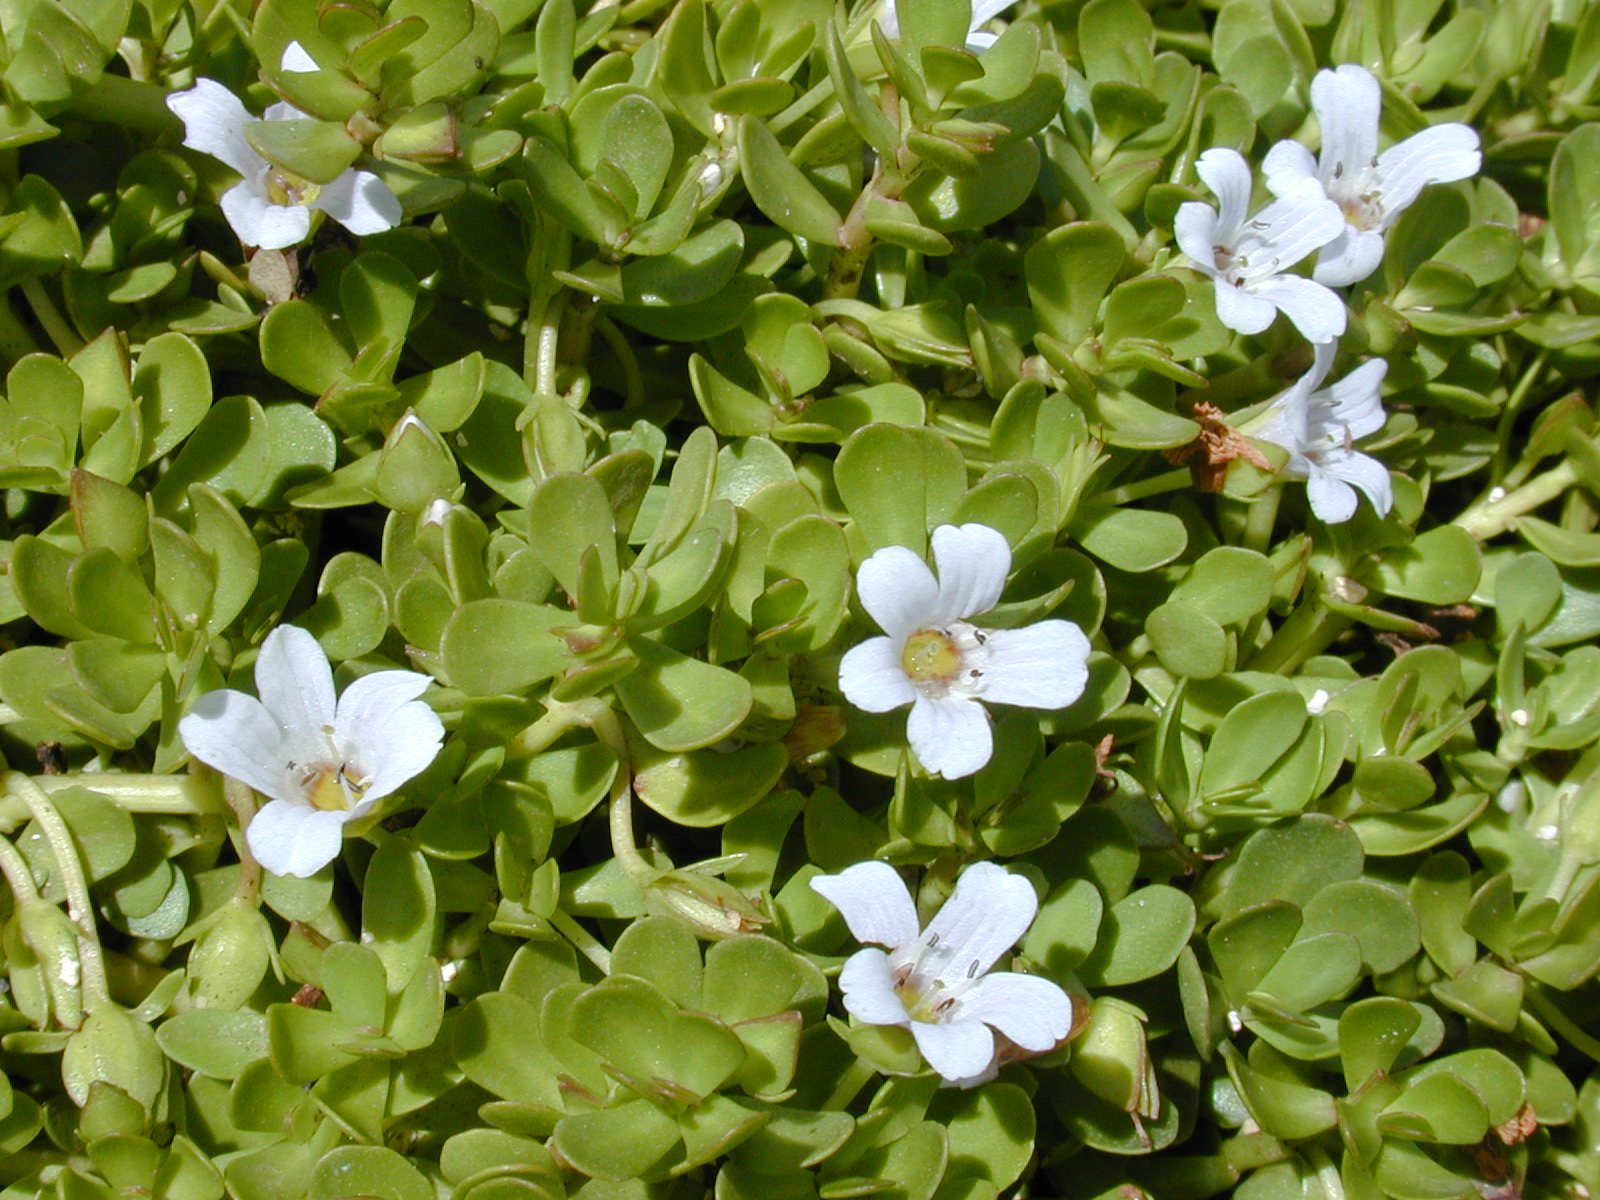 What Are The Health Benefits Of Brahmi Leaves